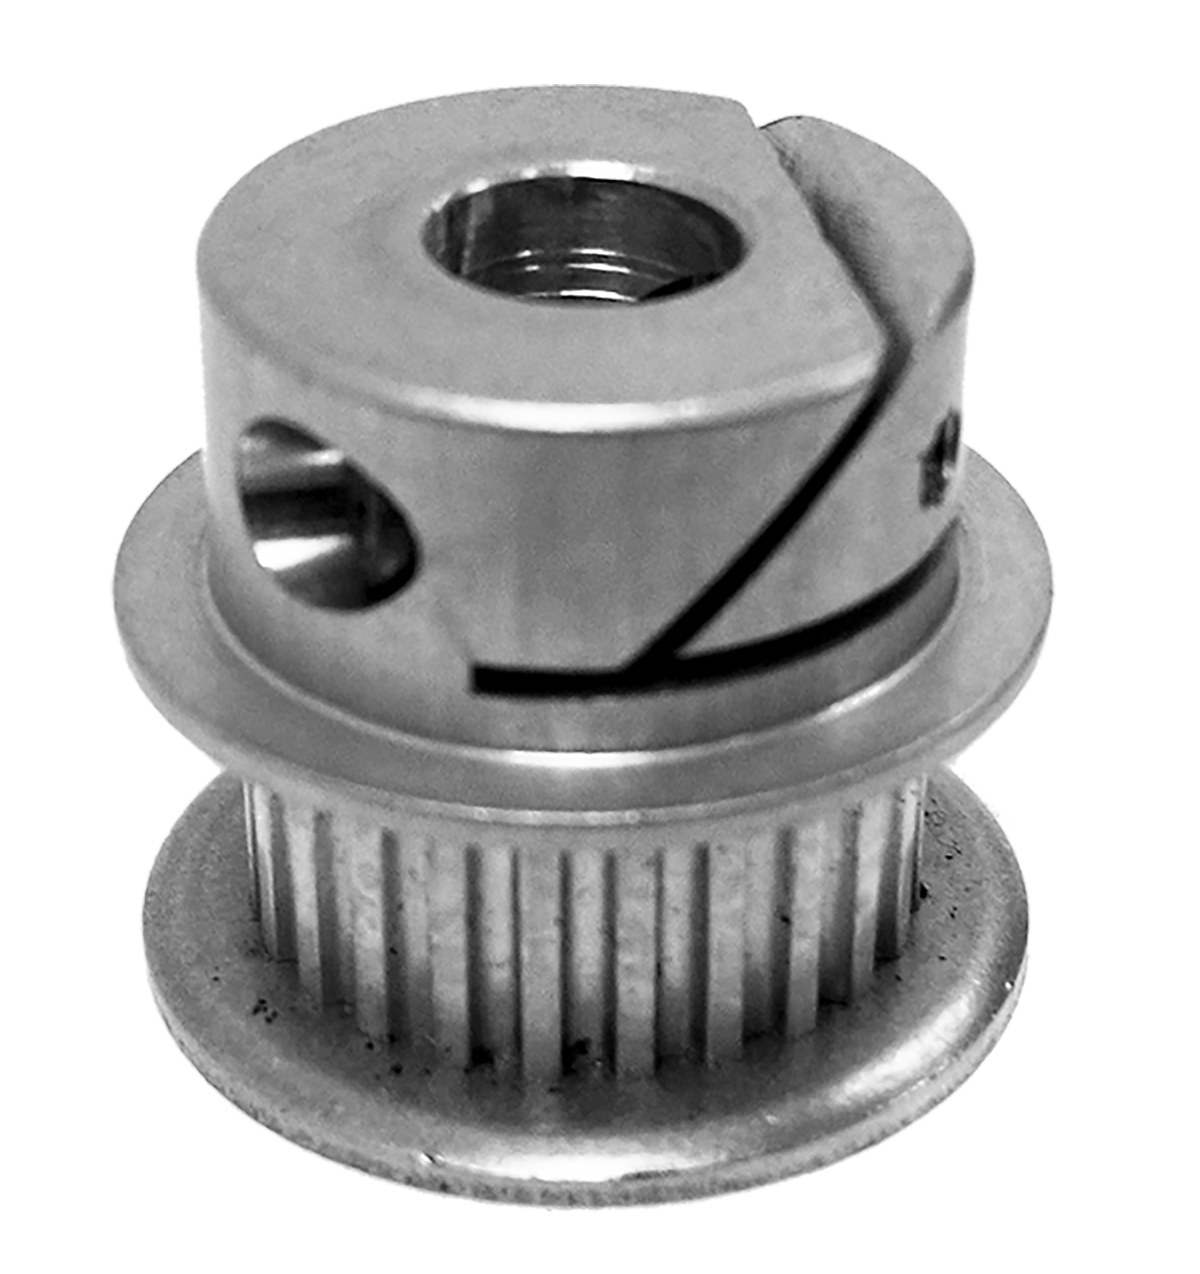 12MP025-IA1 - E-Z Lock Hub Aluminum Imperial Pitch Pulleys